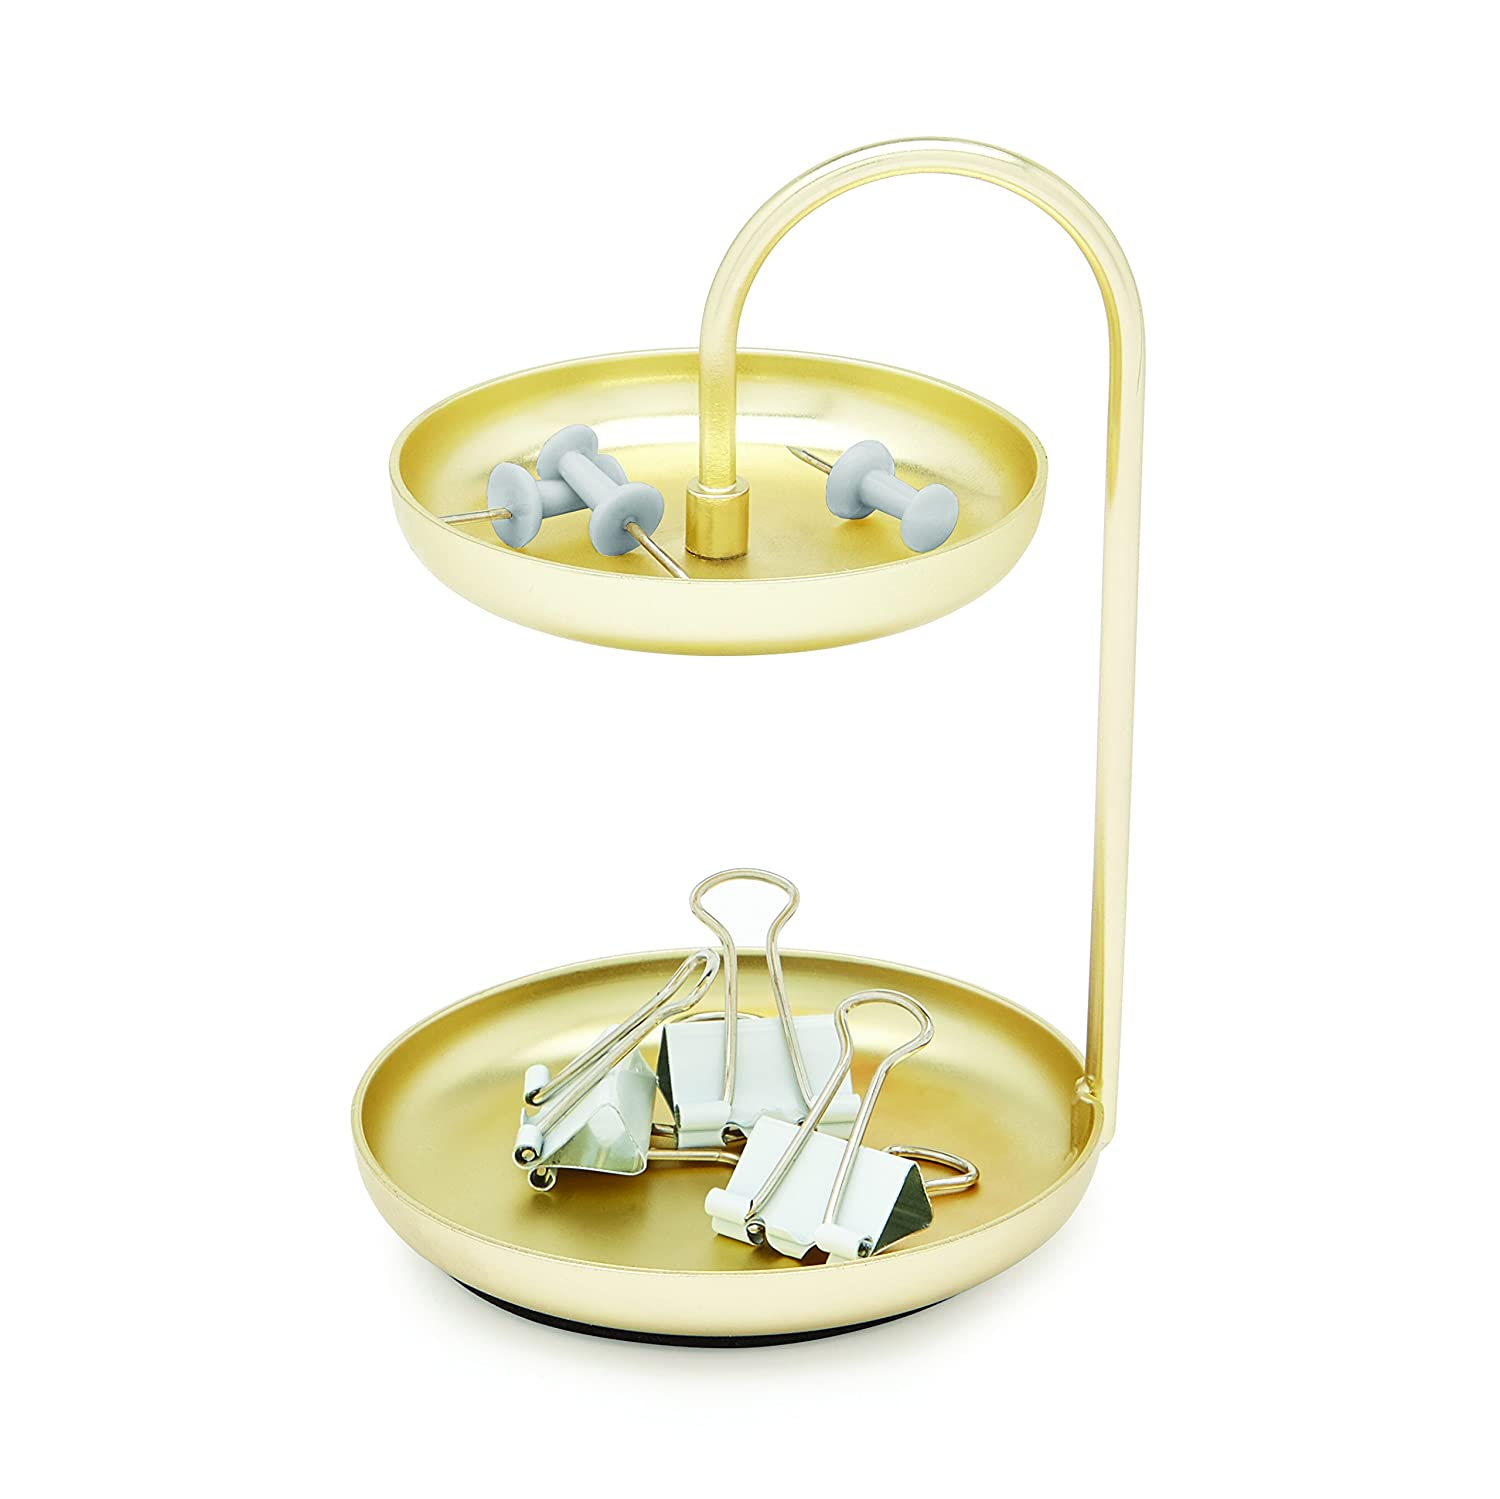 Umbra Poise Tiered Ring Holder, Small: Amazon.ca: Home & Kitchen